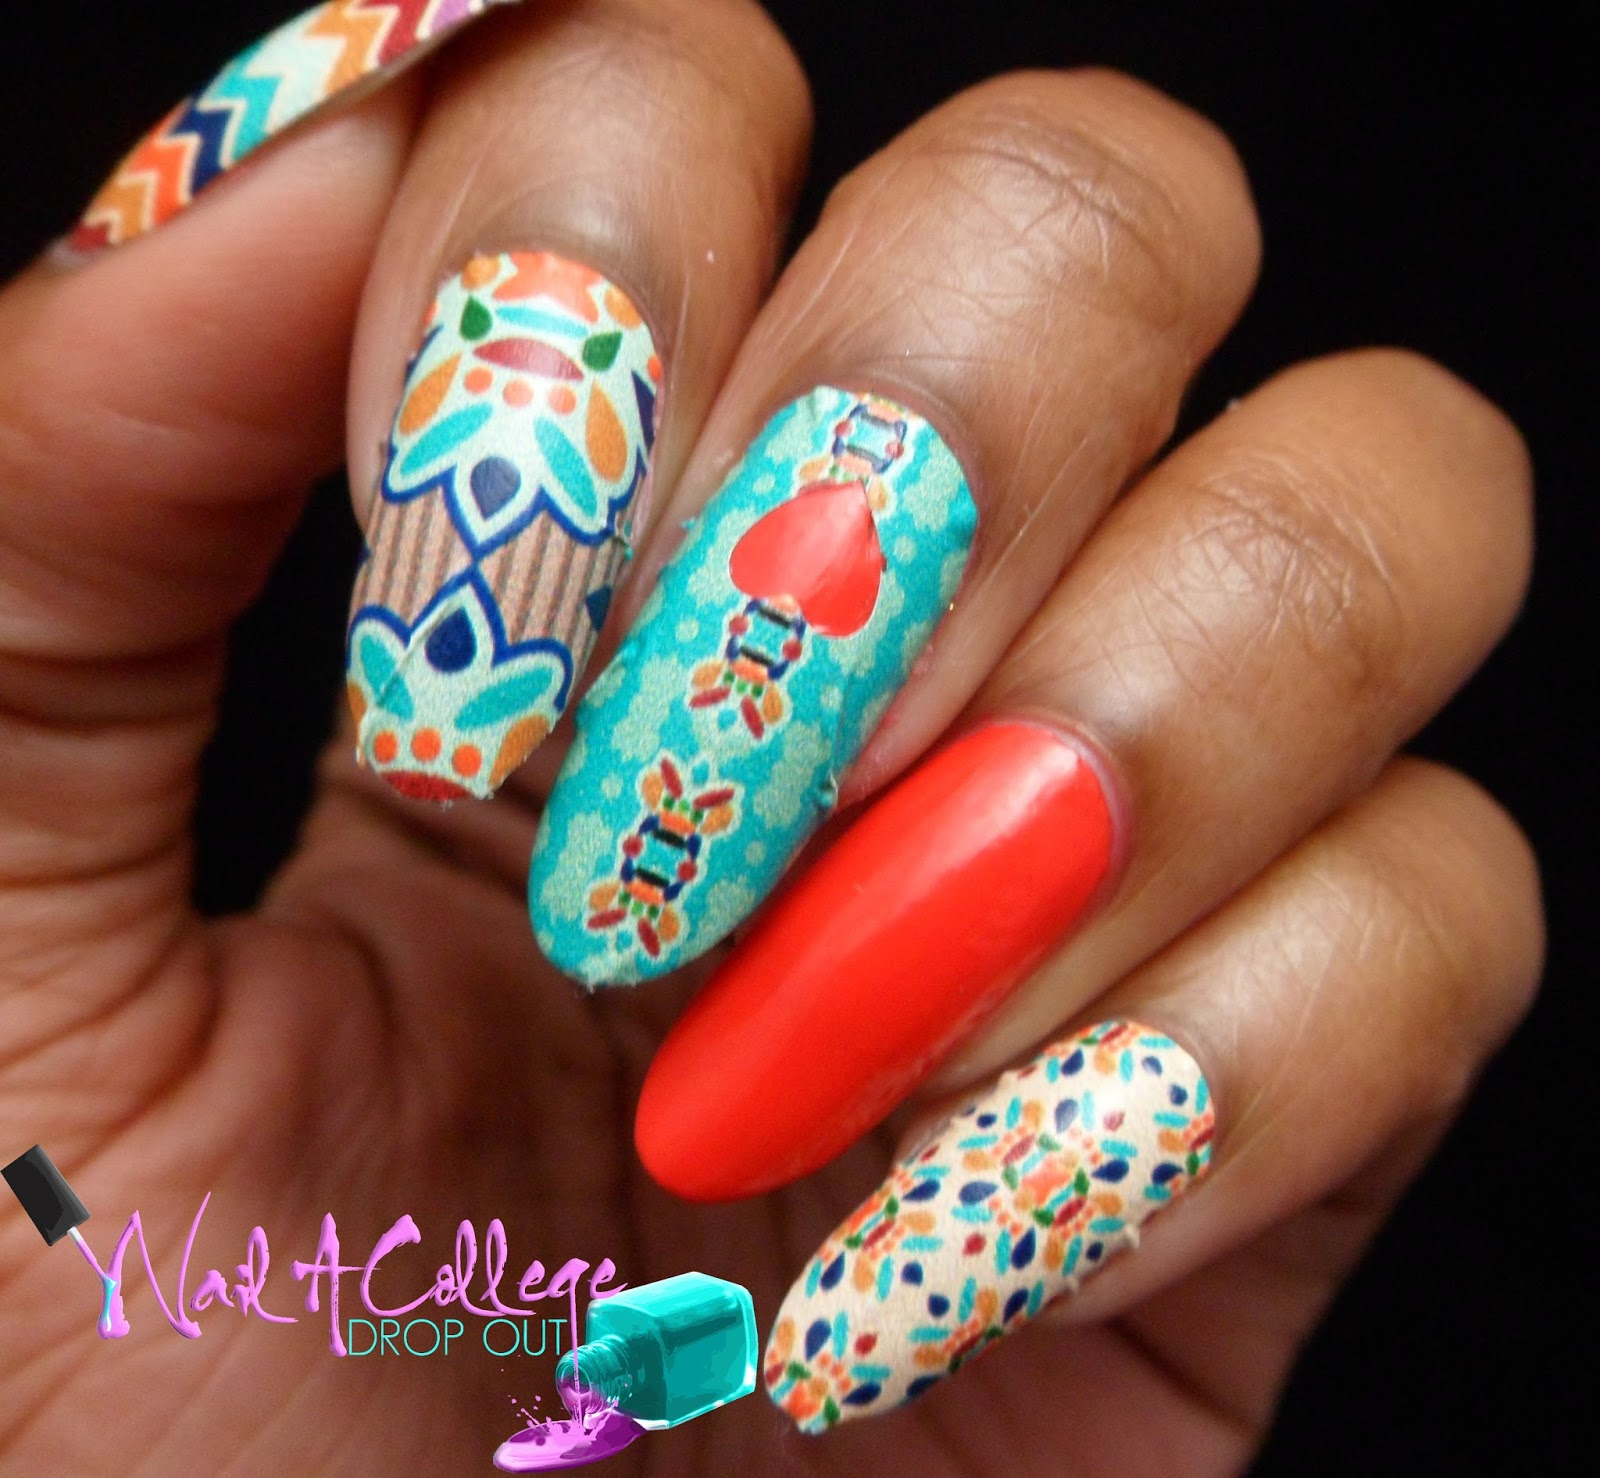 Nail A College Drop Out When Good Manis Go Bad Ncla Designer Nail